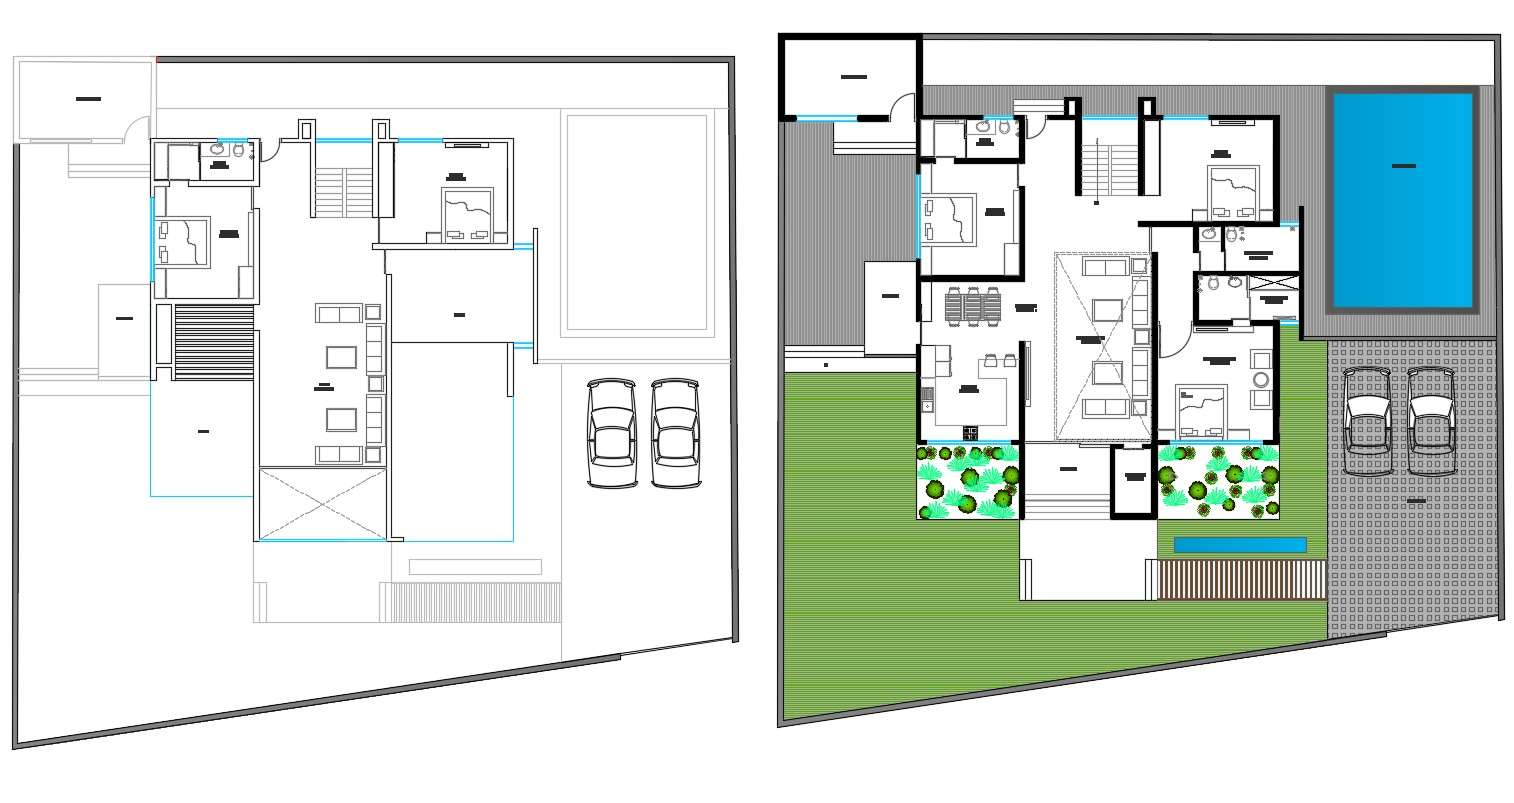 Modern Bungalow Layout Plan With Swimming Pool And Garden Design Dwg File Cadbull